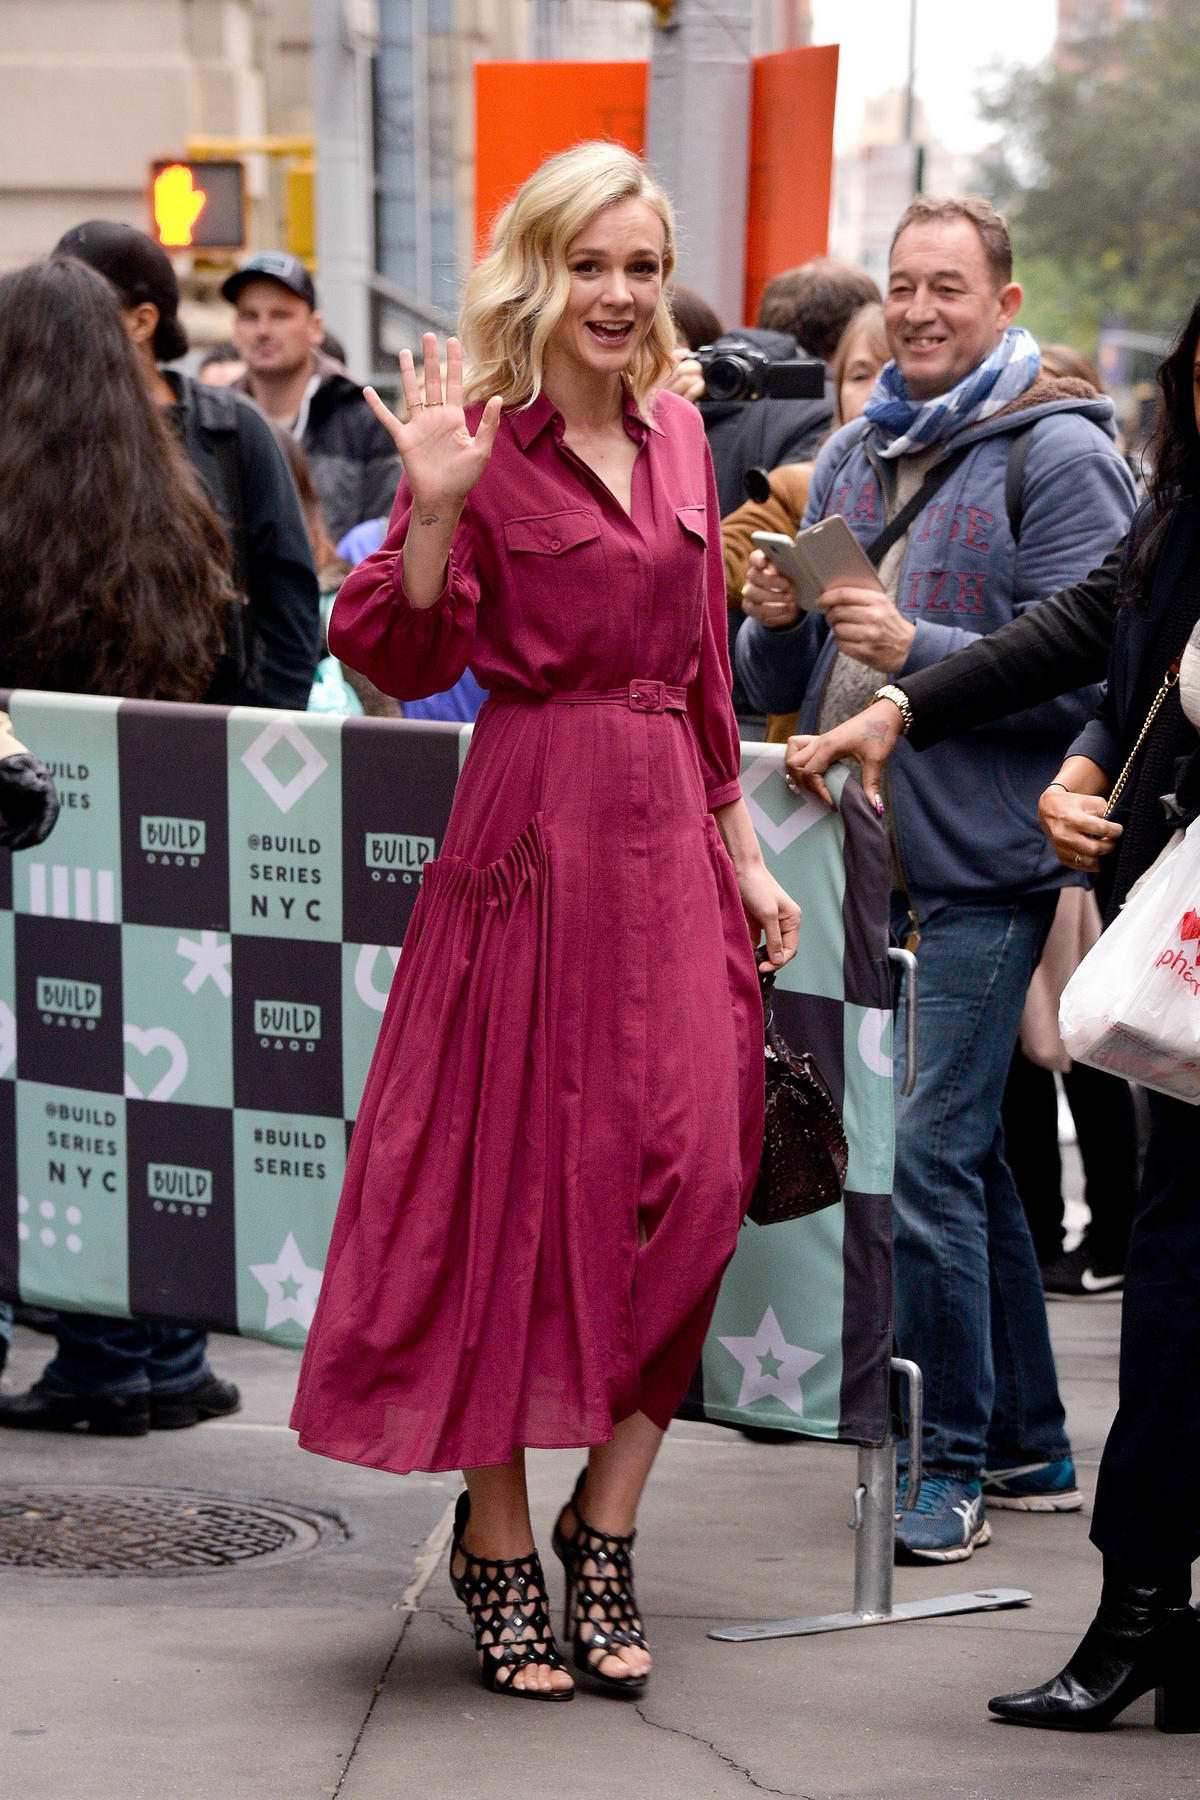 Carey Mulligan arrives to promotes her new movie 'Wildlife' at AOL Build Series in New York City